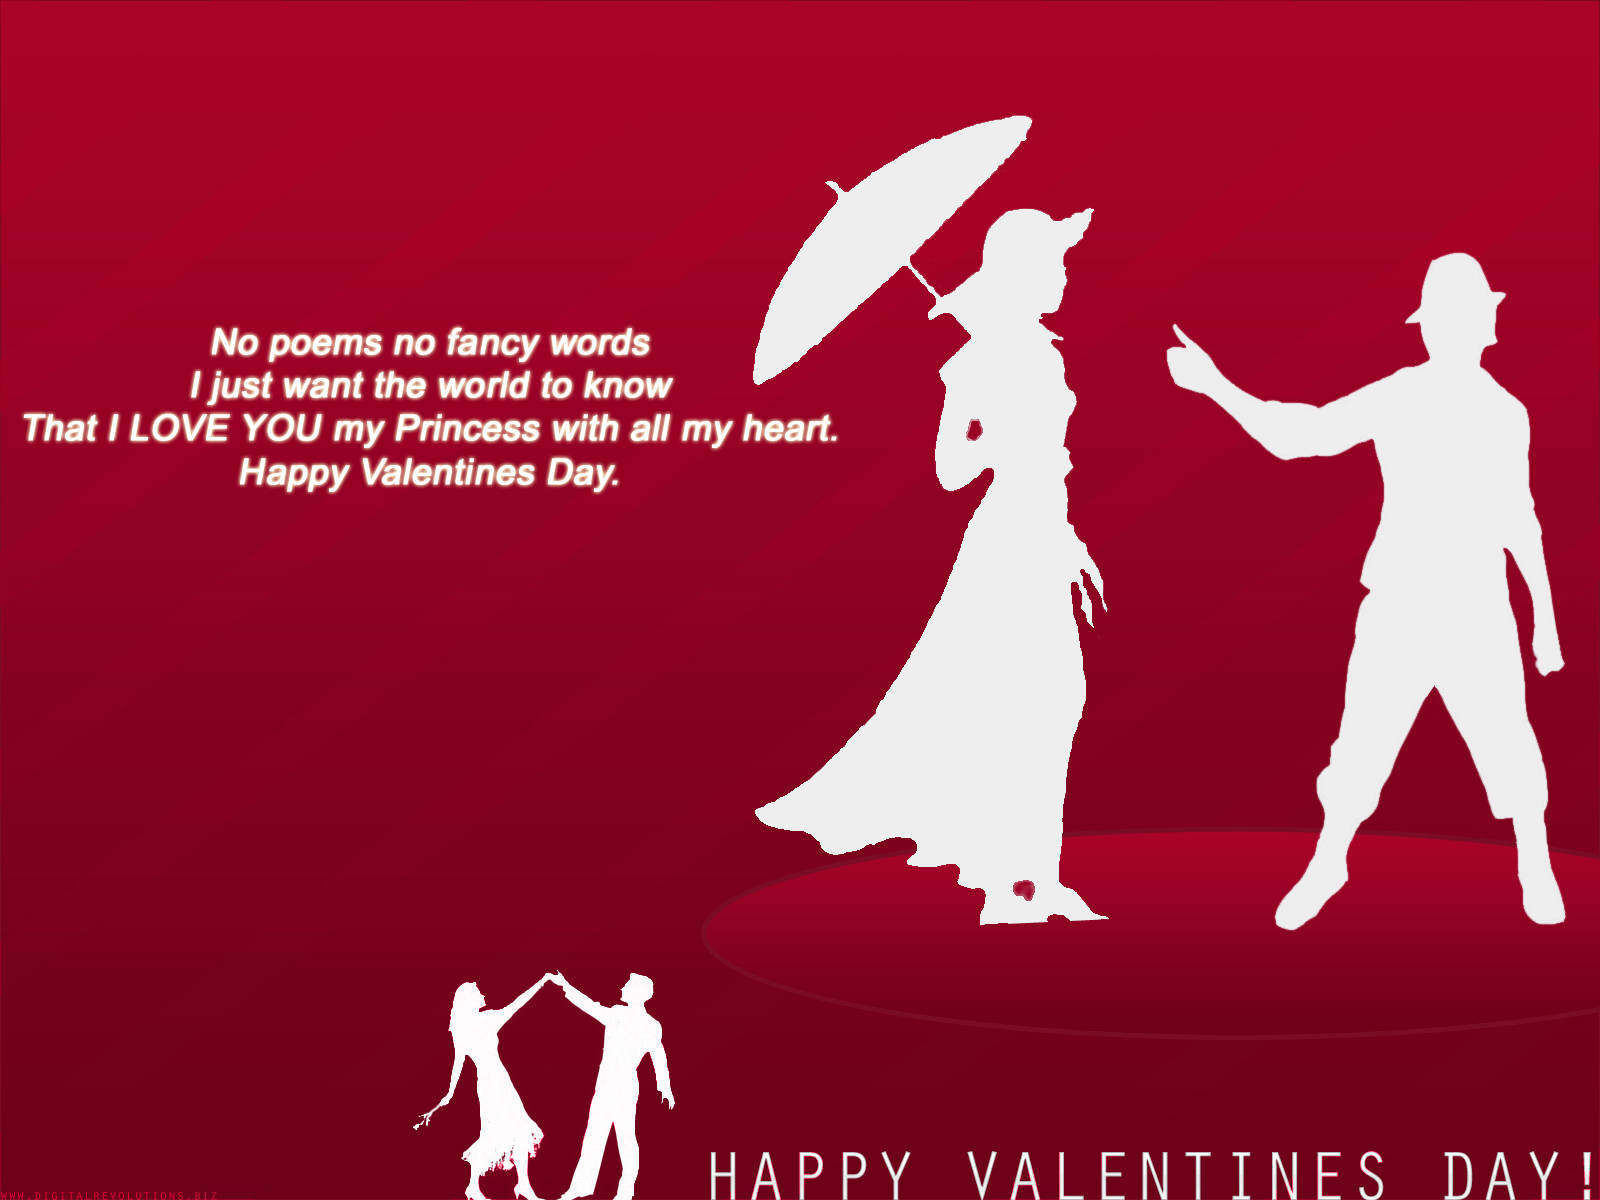 Happy Valentines Day Greetings Cards 2017 Top HD Cards of Happy – Pictures of Valentine Day Cards